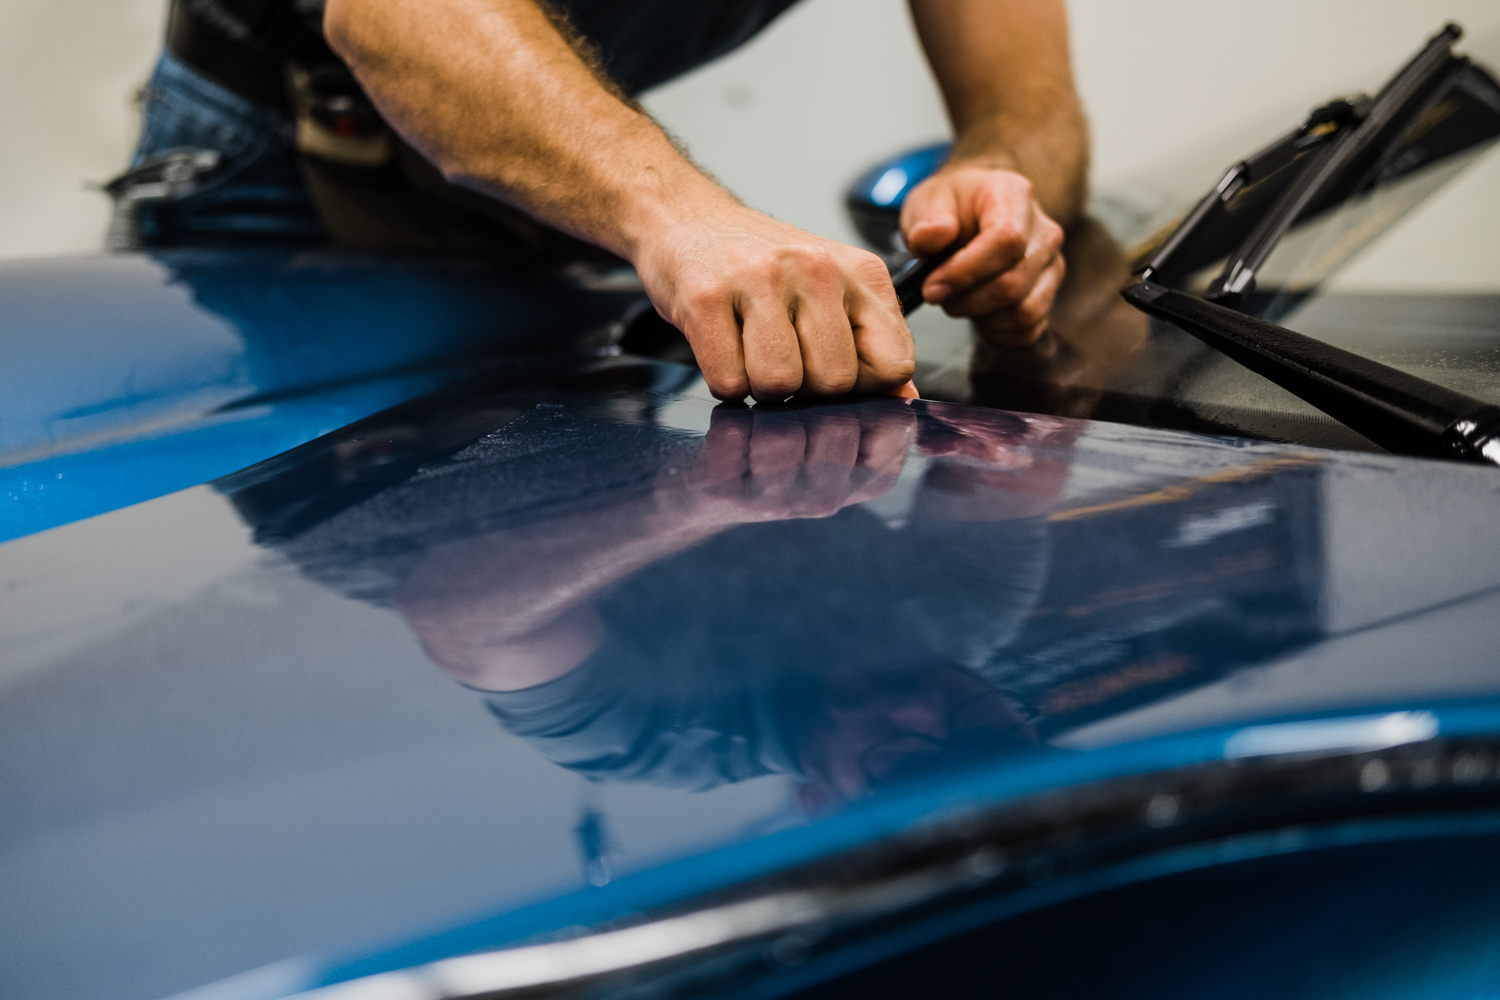 Ford GT-XPEL Ultimate Paint Protection Film-Full-body Wrap-Paint Protection Film-Clear Bra-Ford Performance-128.jpg